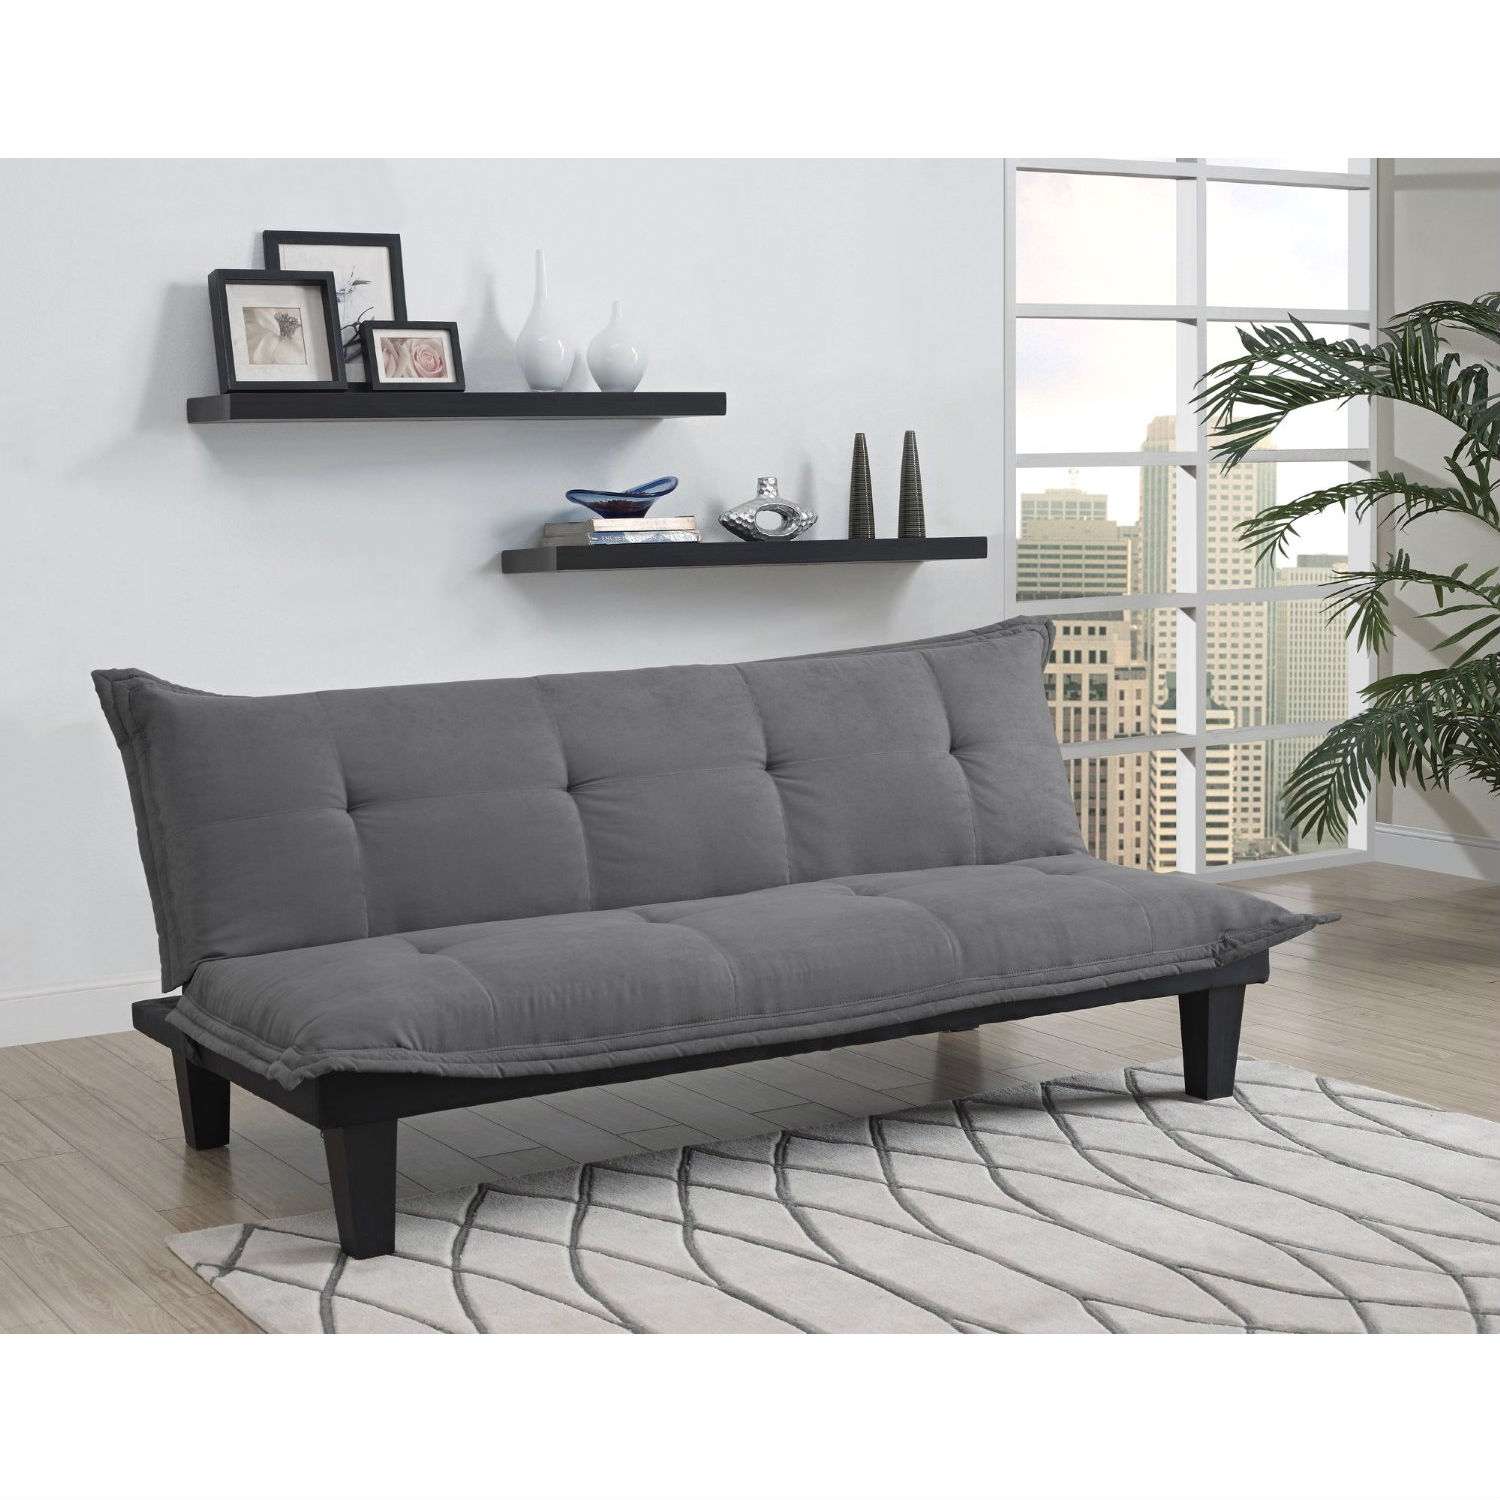 Charcoal Microfiber Clack Futon Sofa Bed Lounger